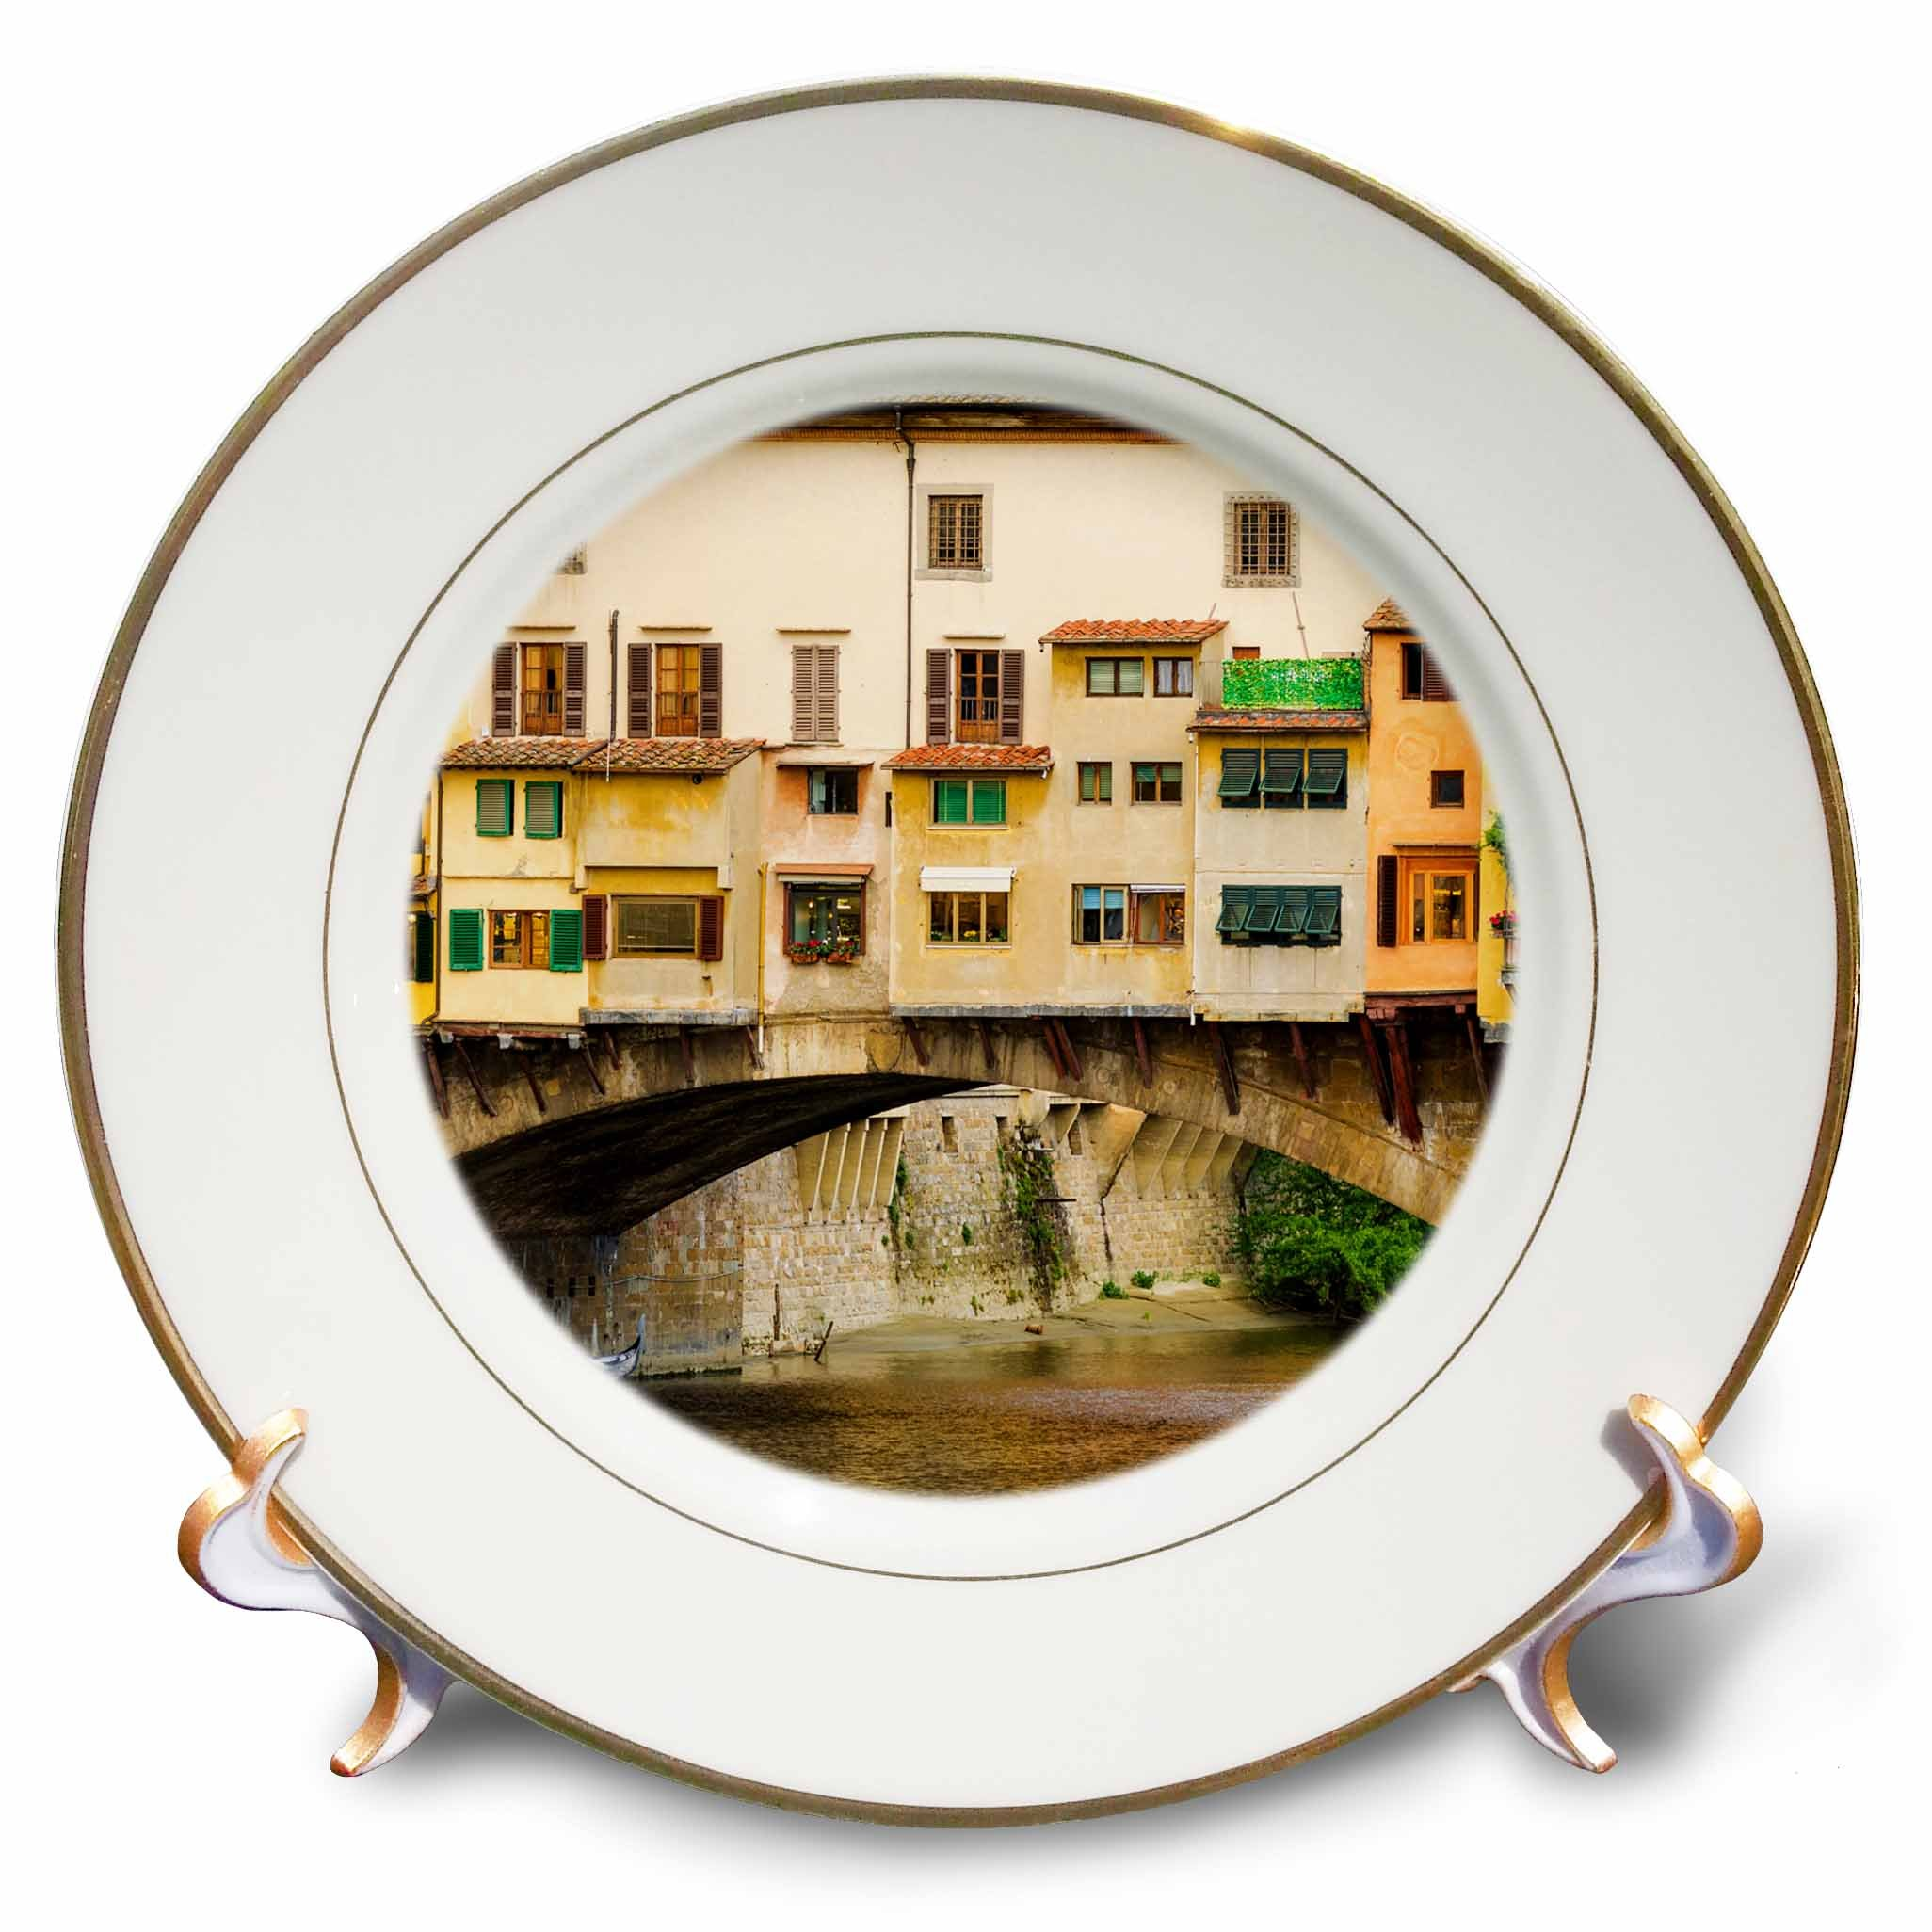 3dRose Danita Delimont - Cities - Shop windows and shutters, Ponte Vecchio, Florence, Tuscany, Italy - 8 inch Porcelain Plate (cp_277636_1) by 3dRose (Image #1)